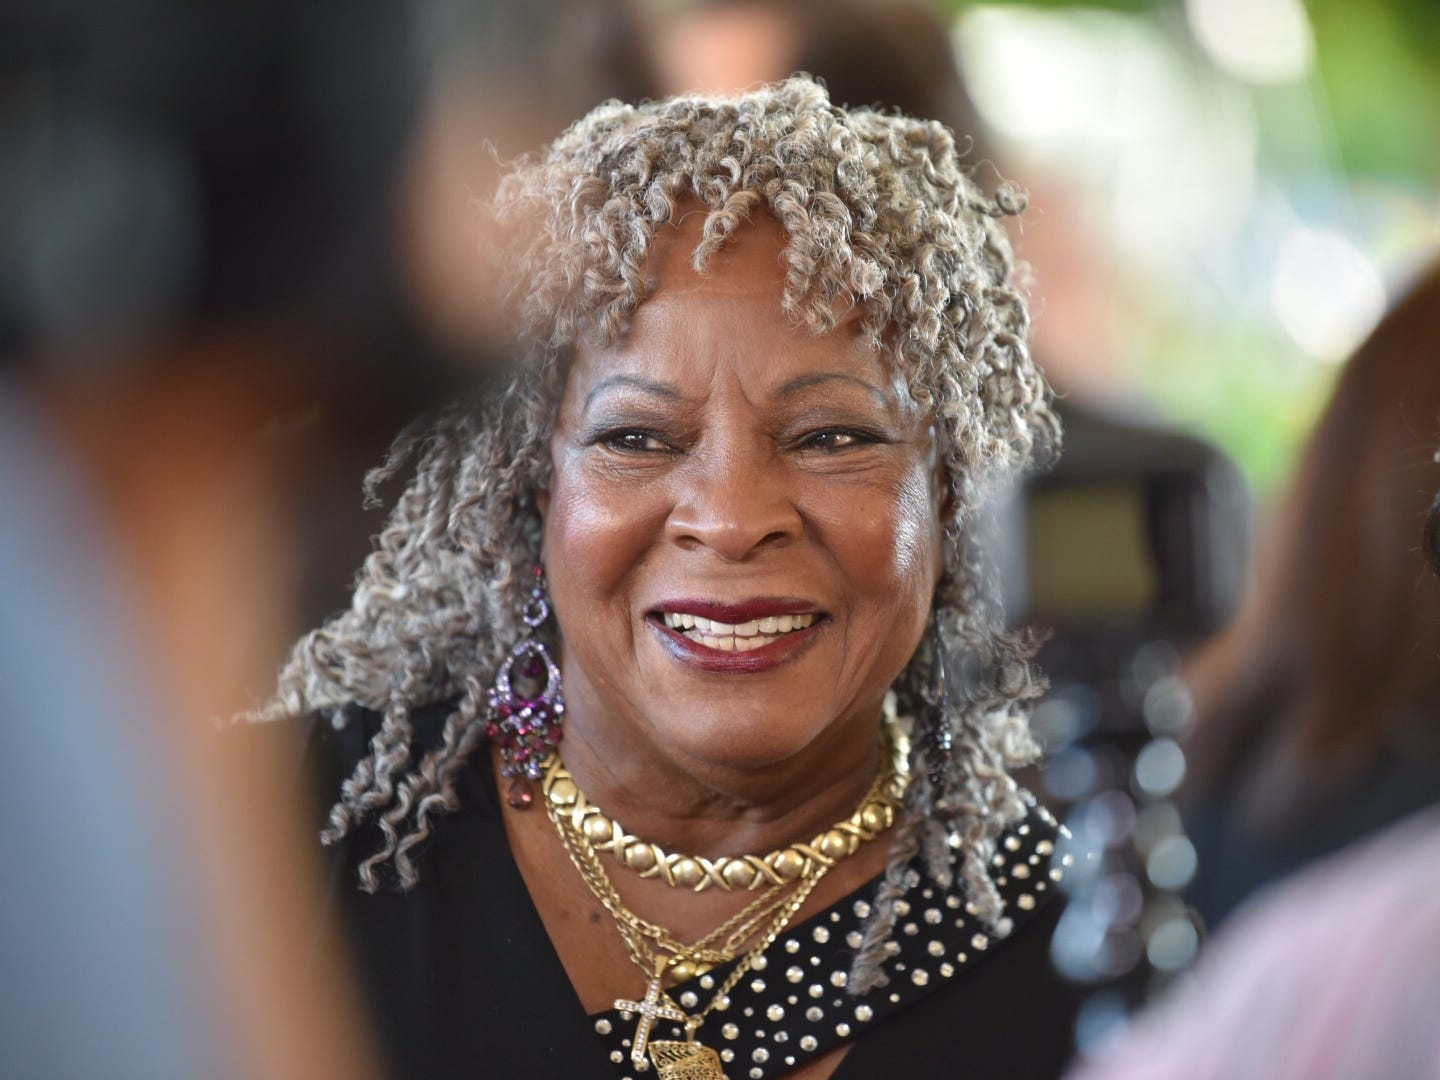 Motown star Martha Reeves is among the luminaries attending the memorial service.